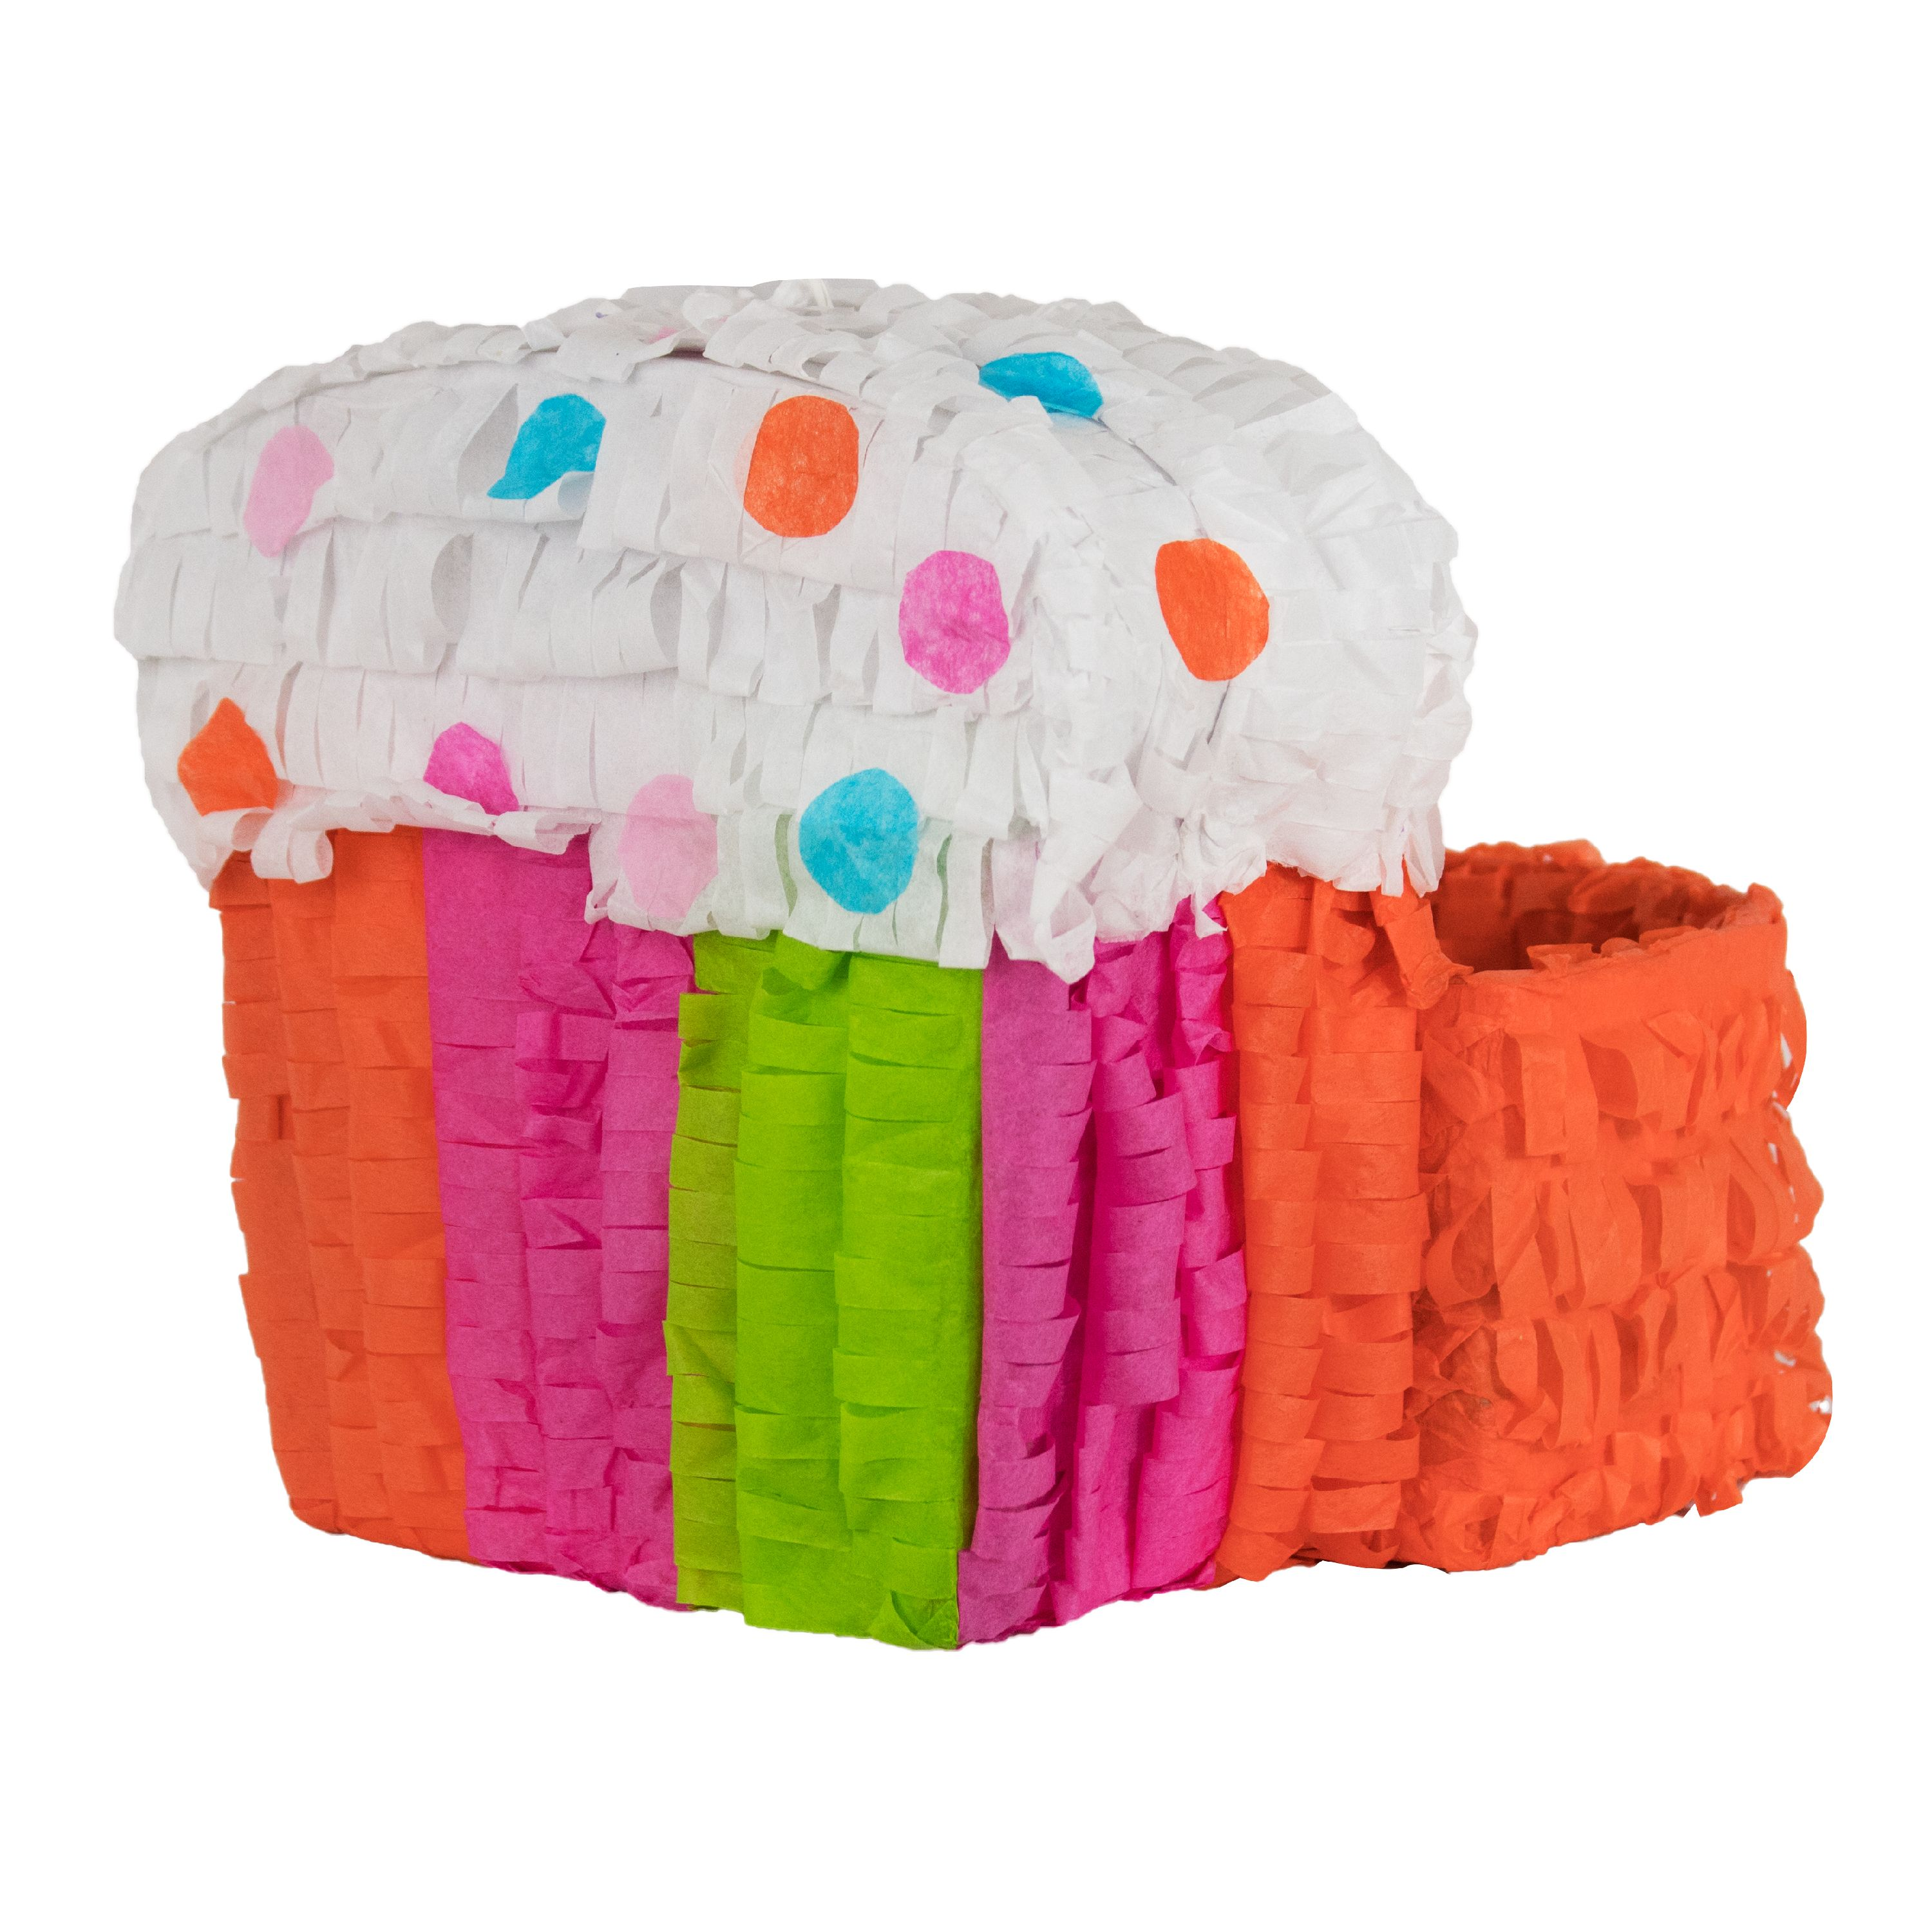 Cupcake Centerpiece Mini Pinata, Orange, Pink, & Green, 8.25in x 12in